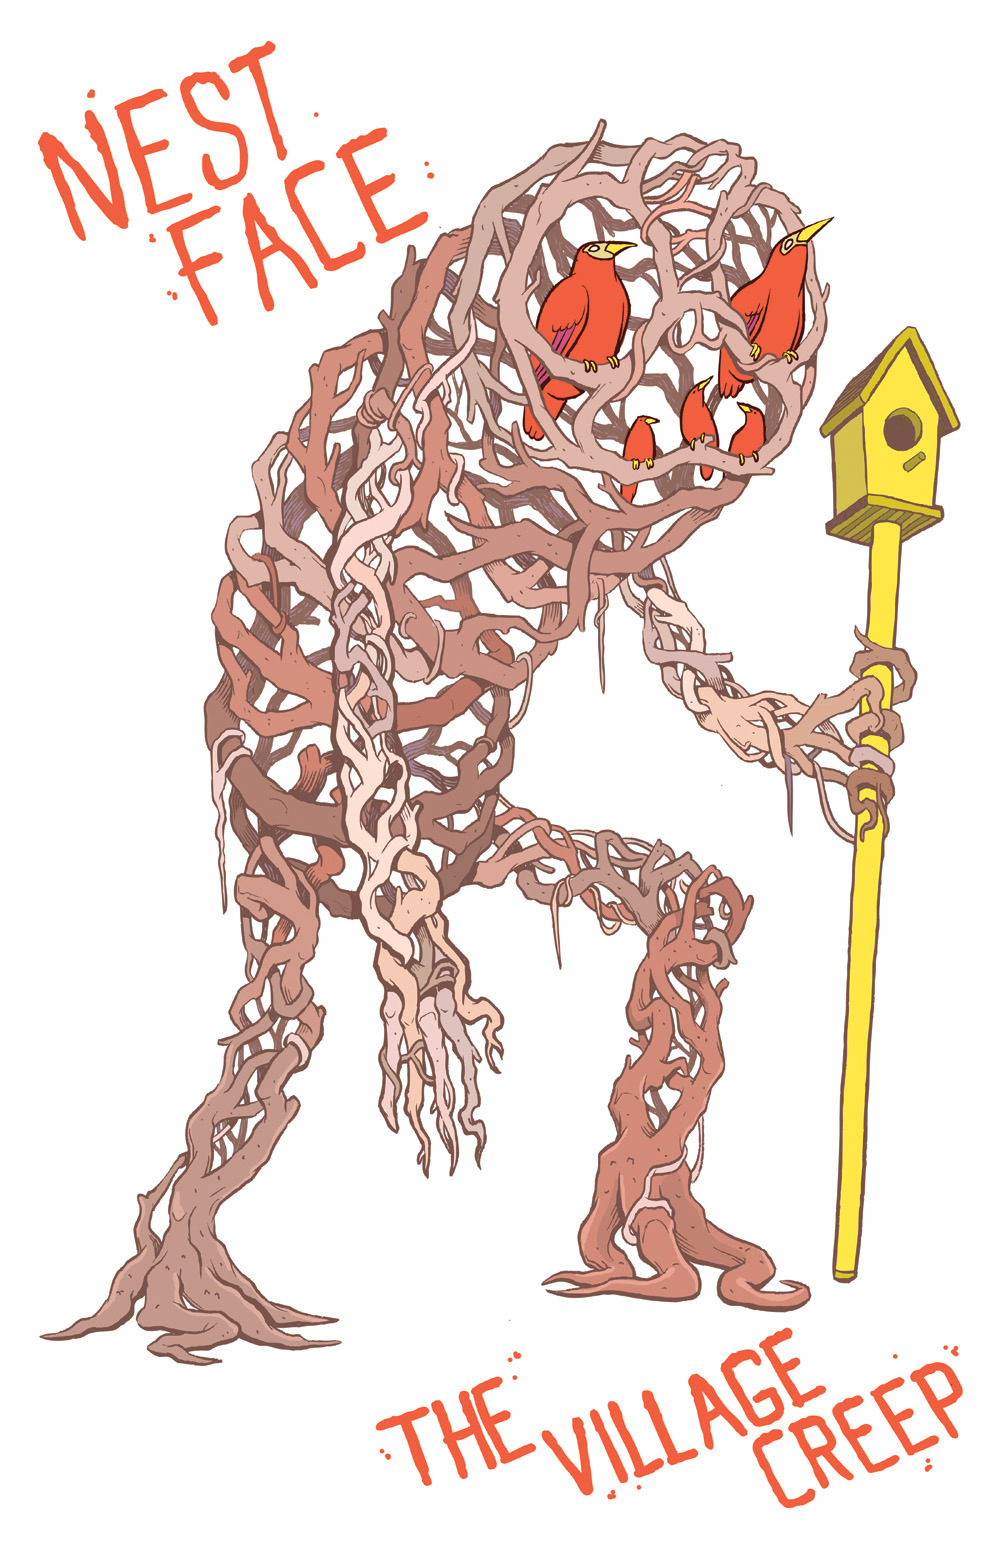 This son' bitch is Nest Face, the creakiest creature in the village creep. He's entirely composed of old tree limbs and he's harbored almost every species of bird, lizard an insect in the nooks and crannies of his being. You'll most likely find Nest Face in the woods, seeking out his replacement parts among the scattered foliage.